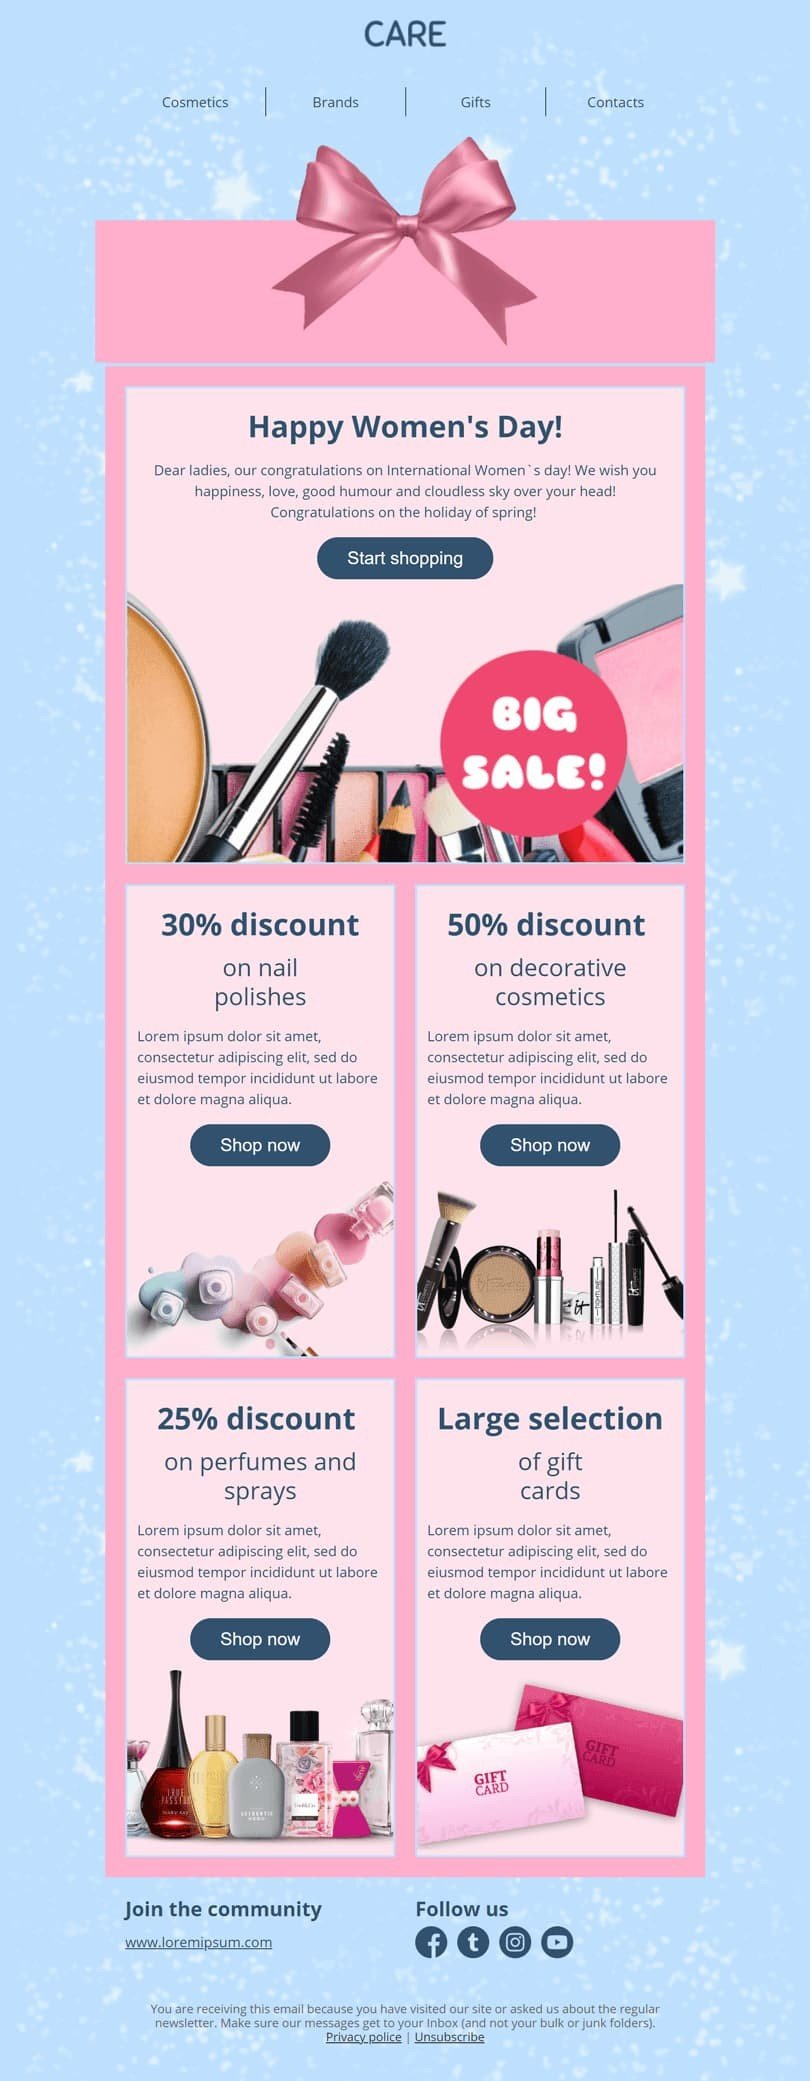 Women's Day Email Template «Gift box» for Beauty & Personal Care industry desktop view